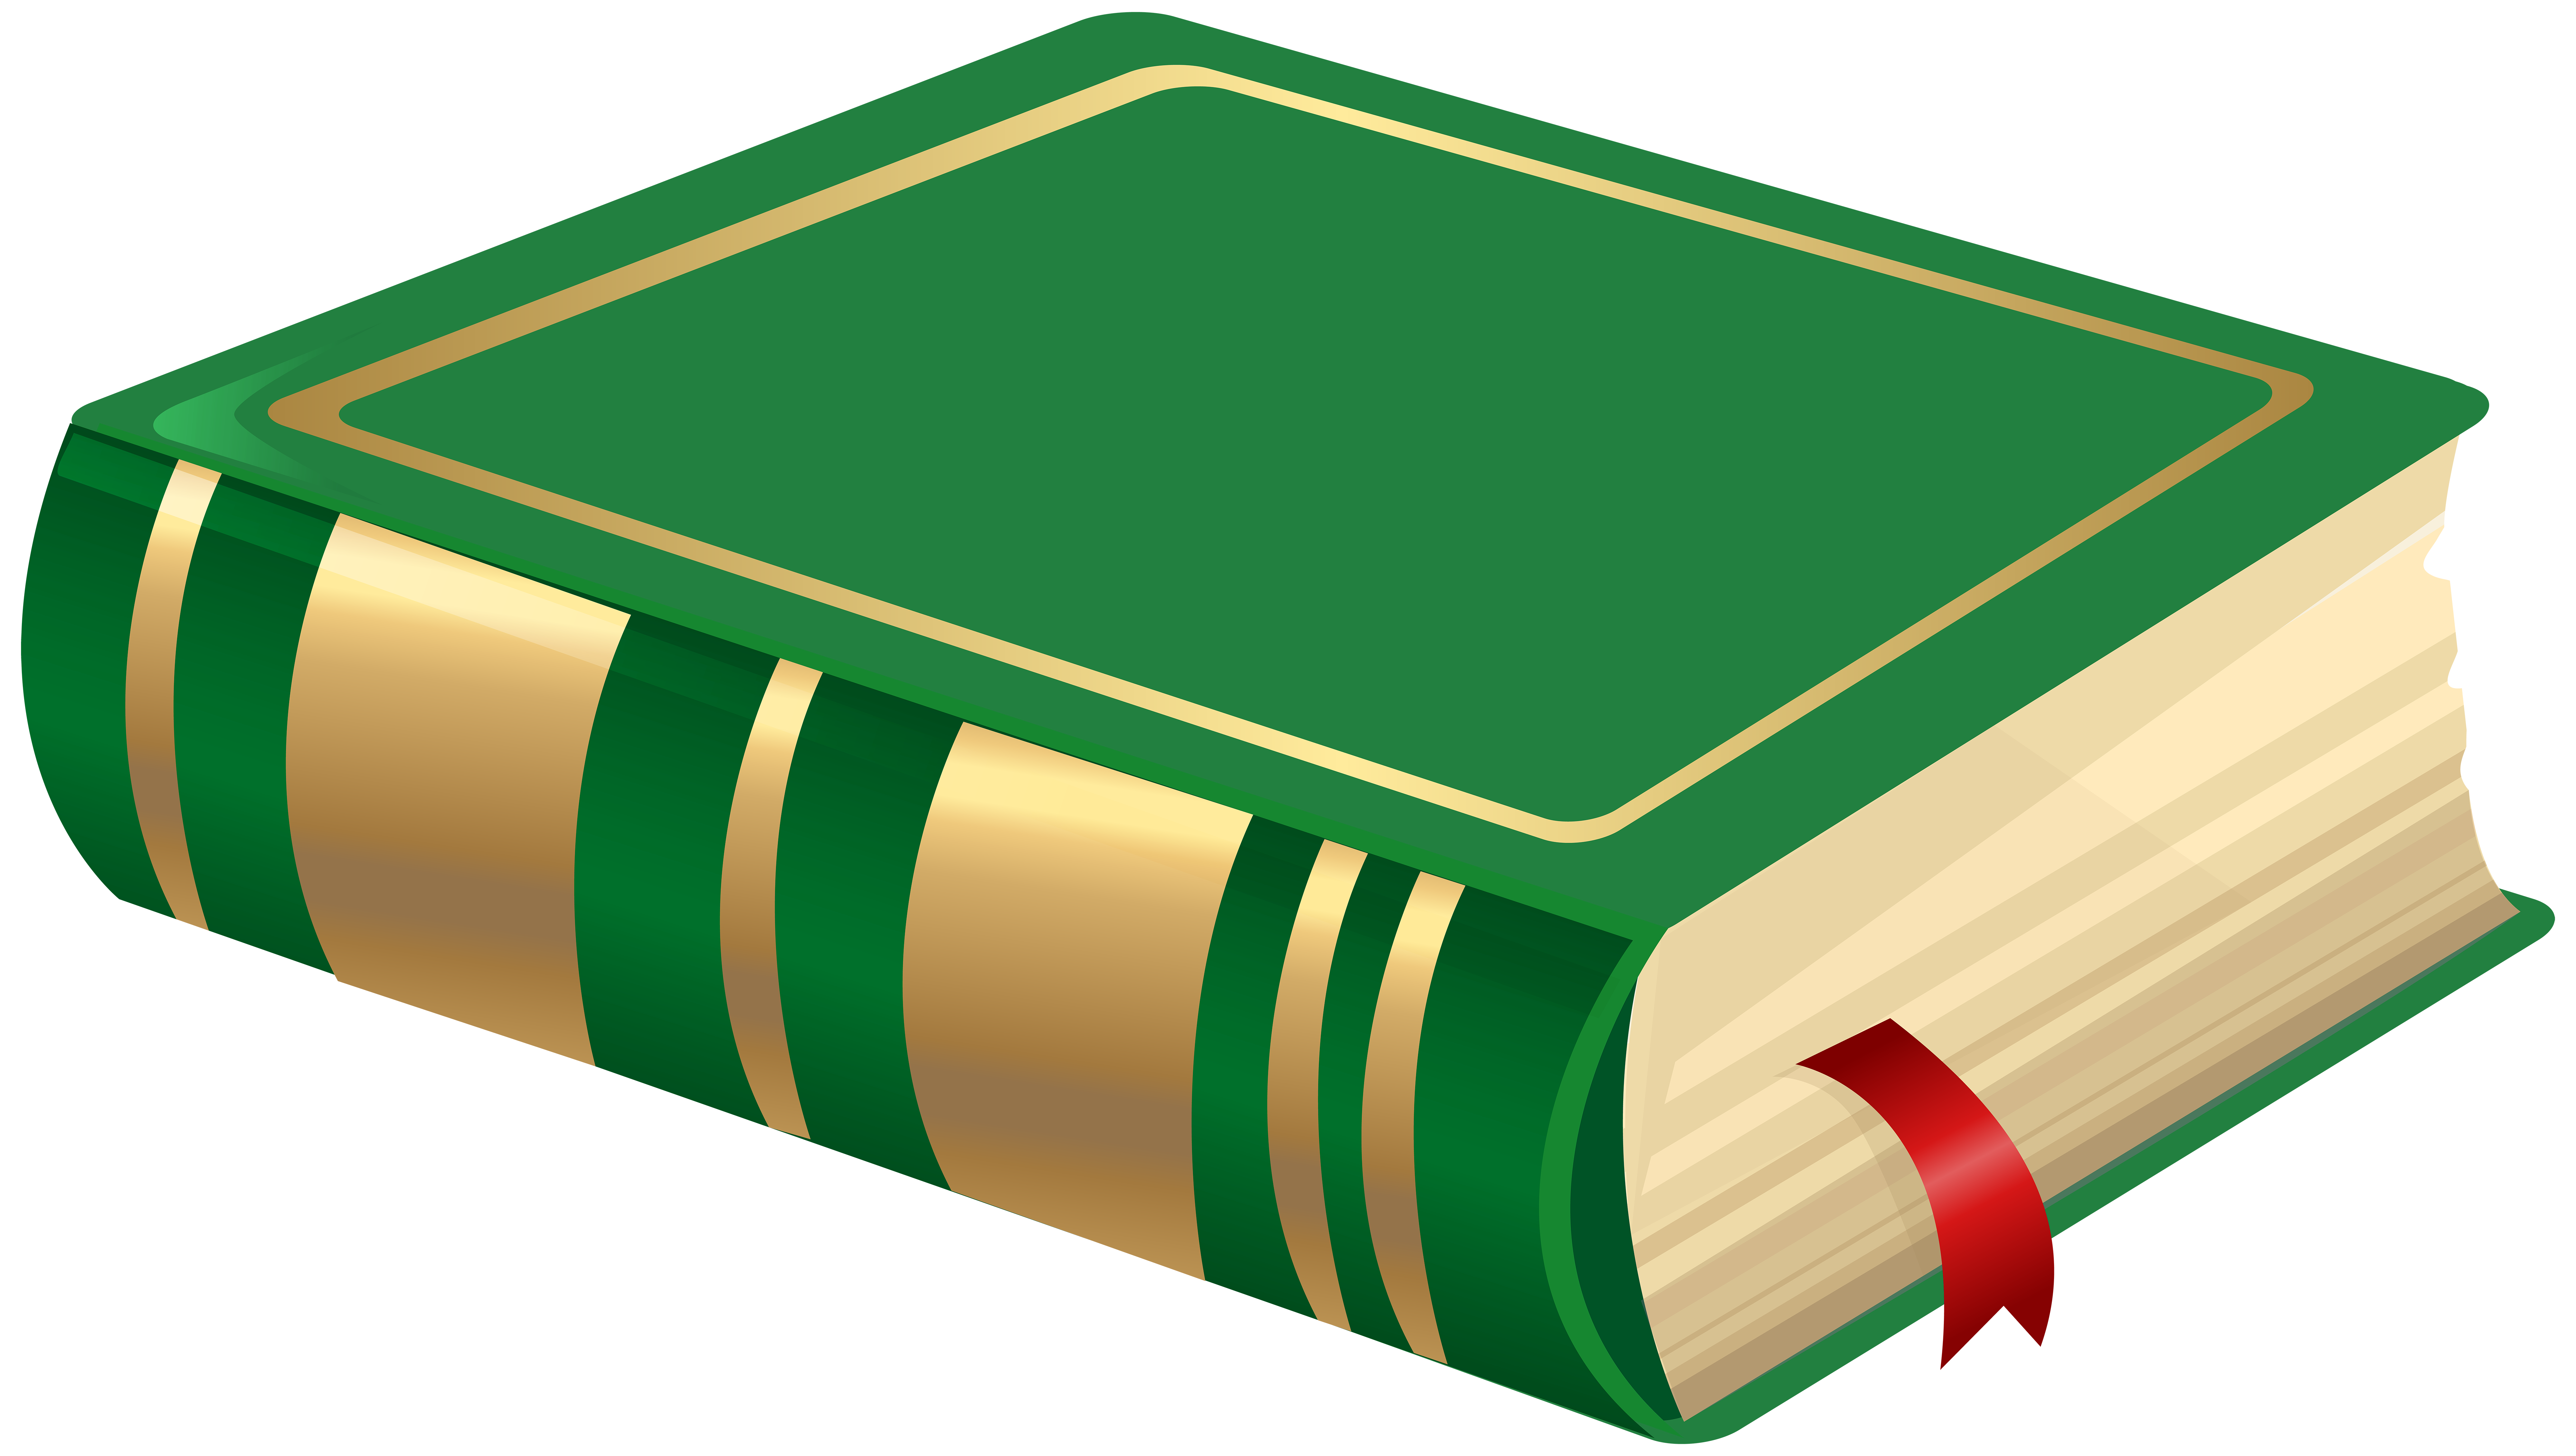 Green book png.